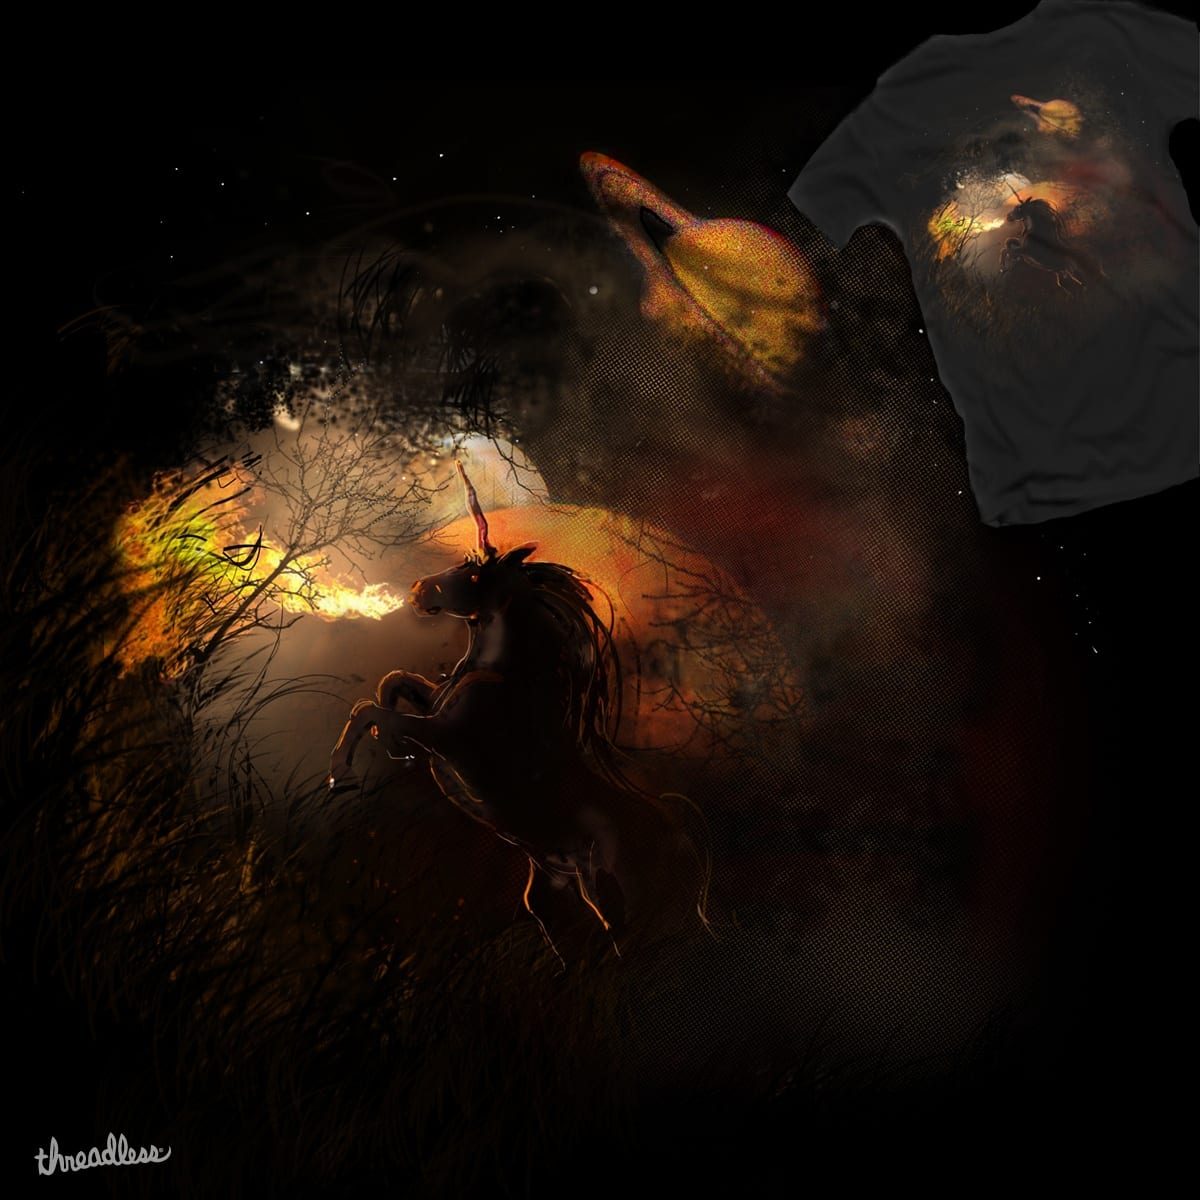 Unicorn of Fire by johnnyspeter on Threadless